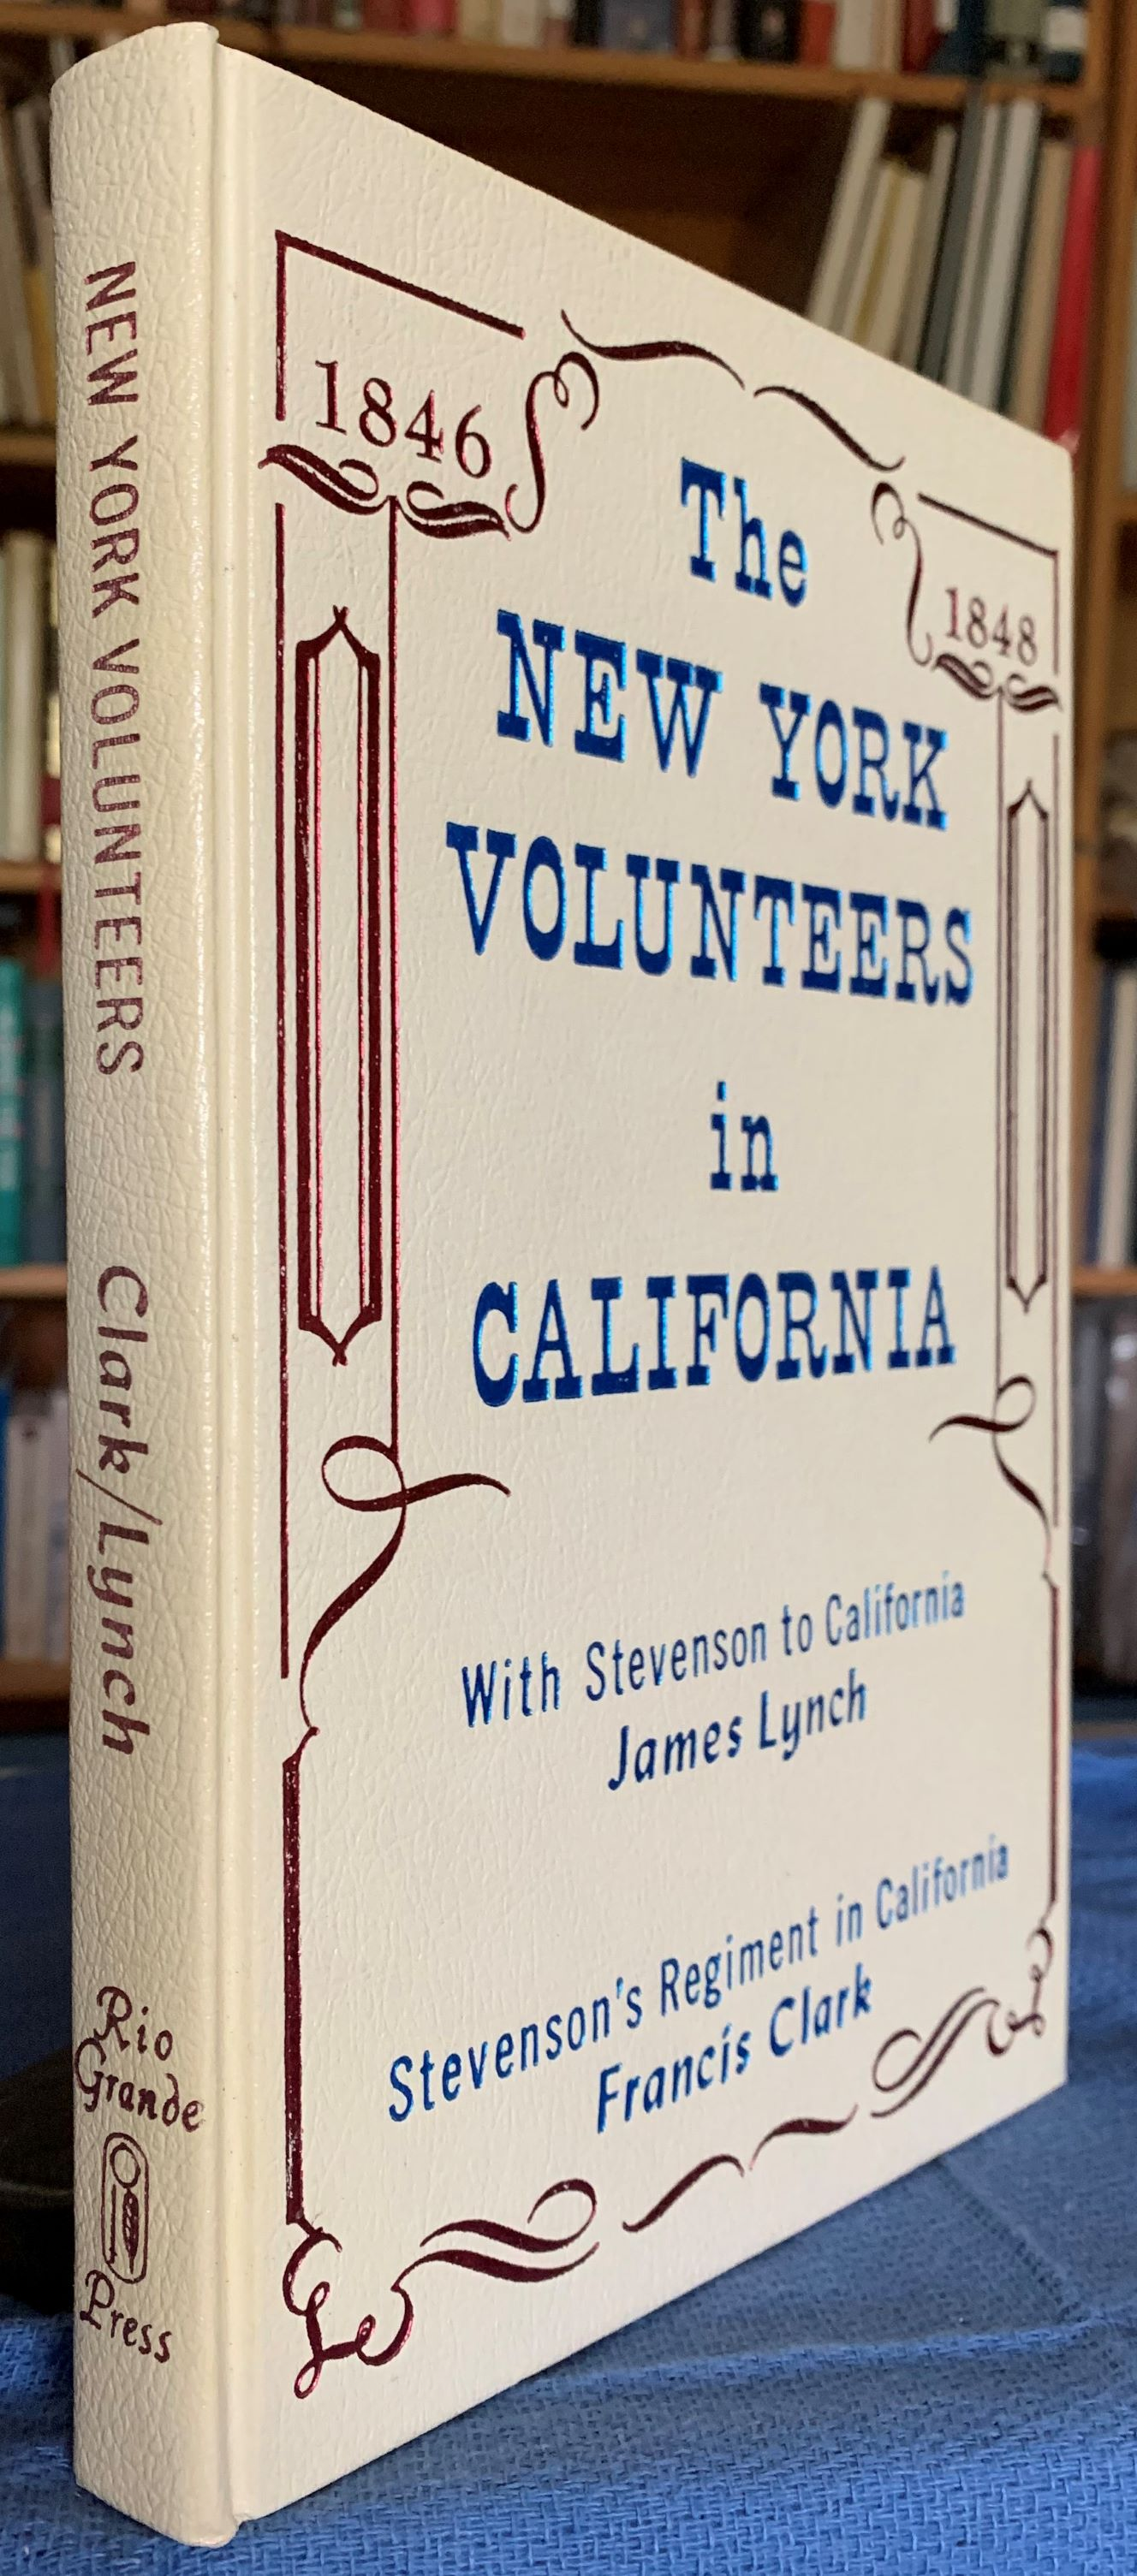 Image for The New York Volunteers in California: With Stevenson to California (with) Stevenson's Regiment in California.